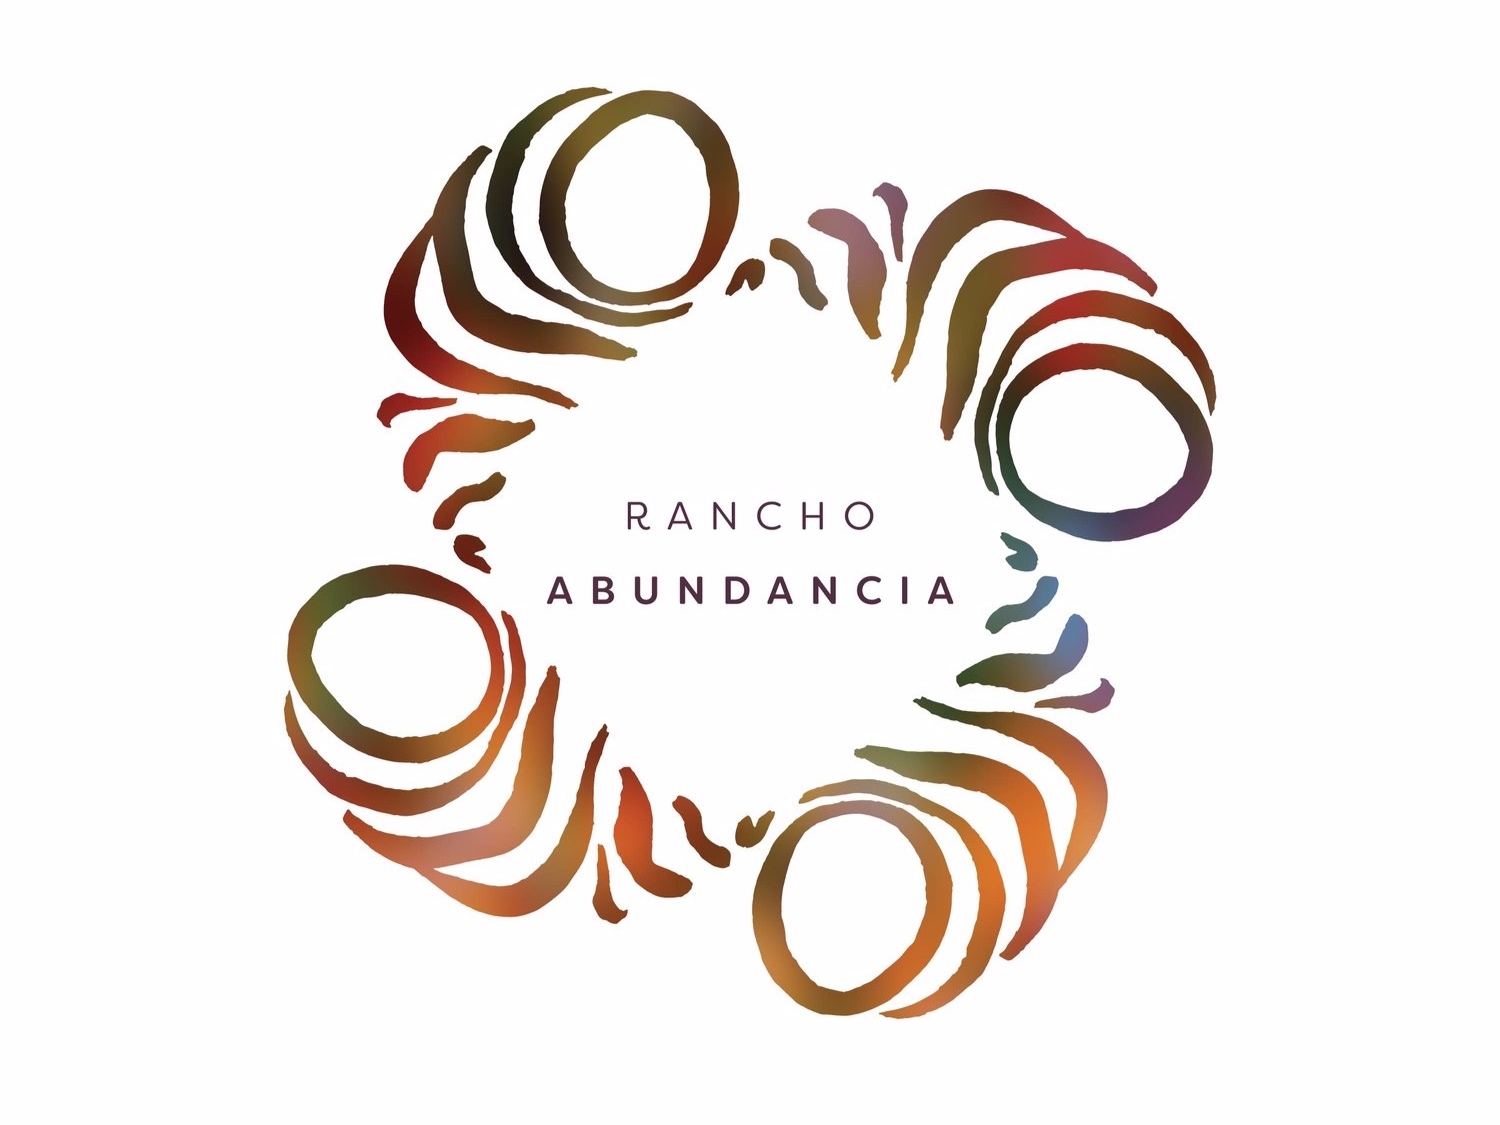 Lifes Pleasures in San Miguel Countryside - Identity design for Rancho Abundance